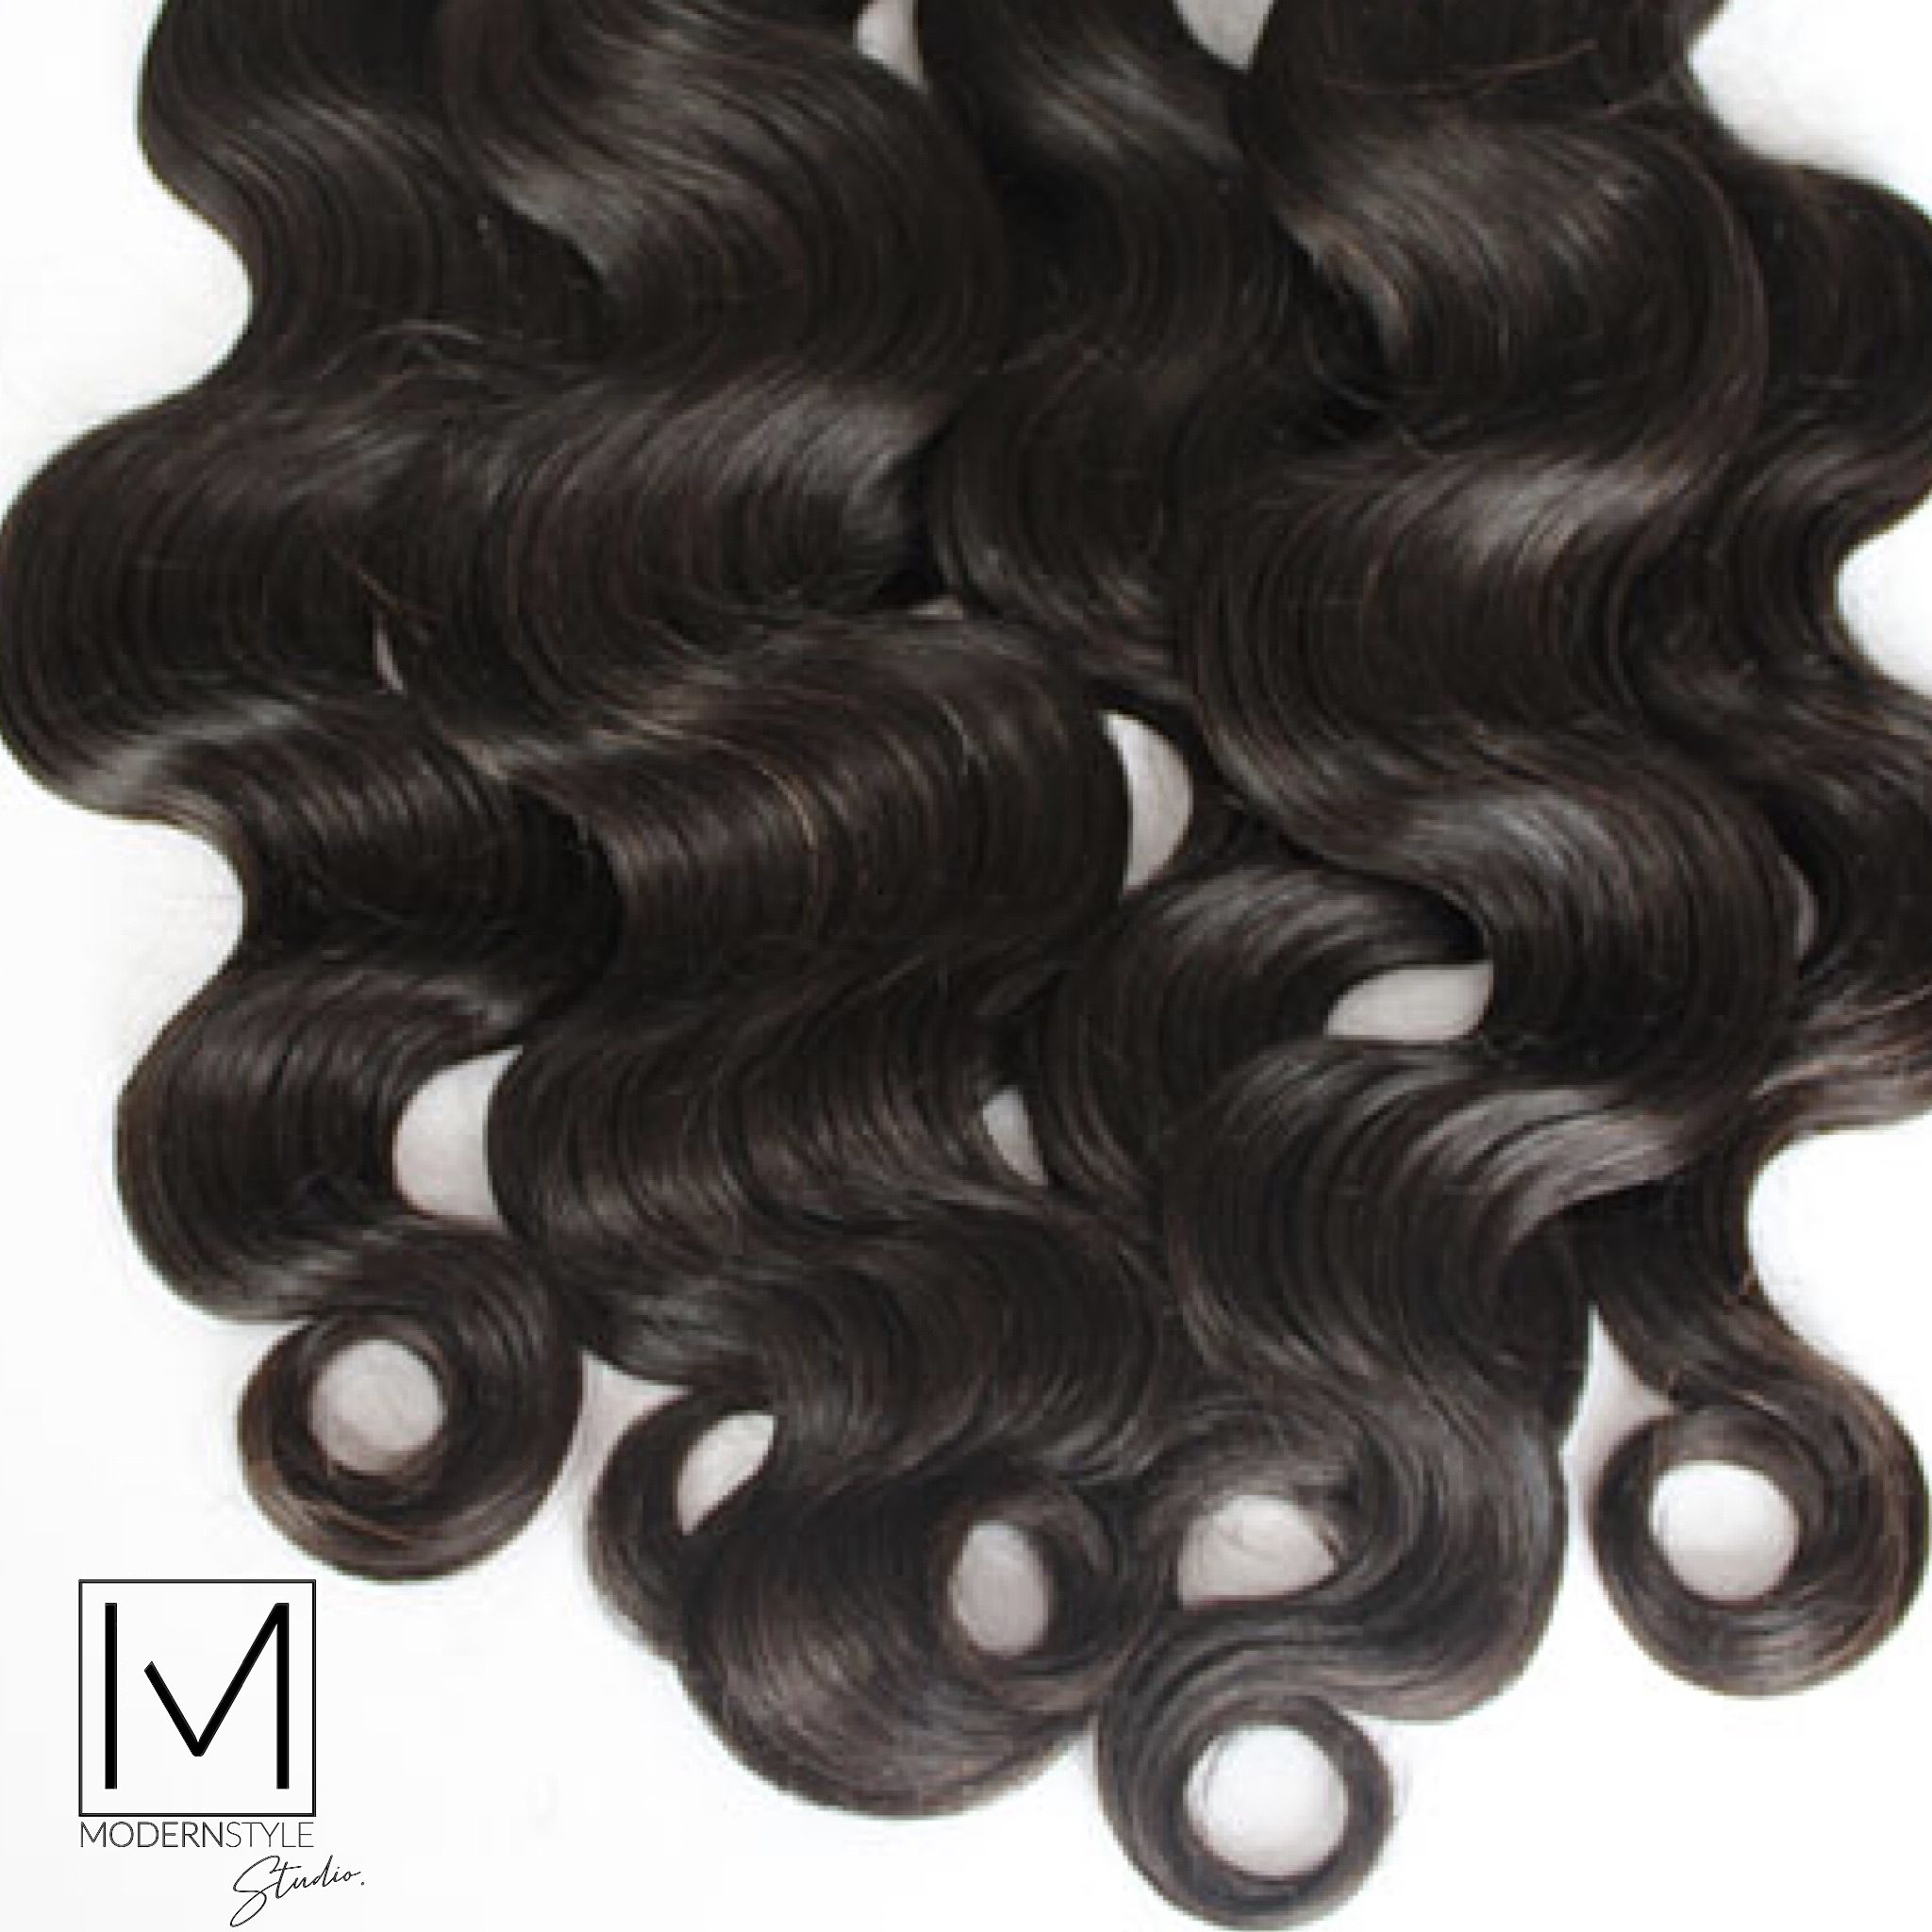 Hair extensions Charlotte, Brazilian Hair extensions Charlotte, hair extensions expert Charlotte, South Charlotte hair extensions, bellami hair Charlotte, great links hair